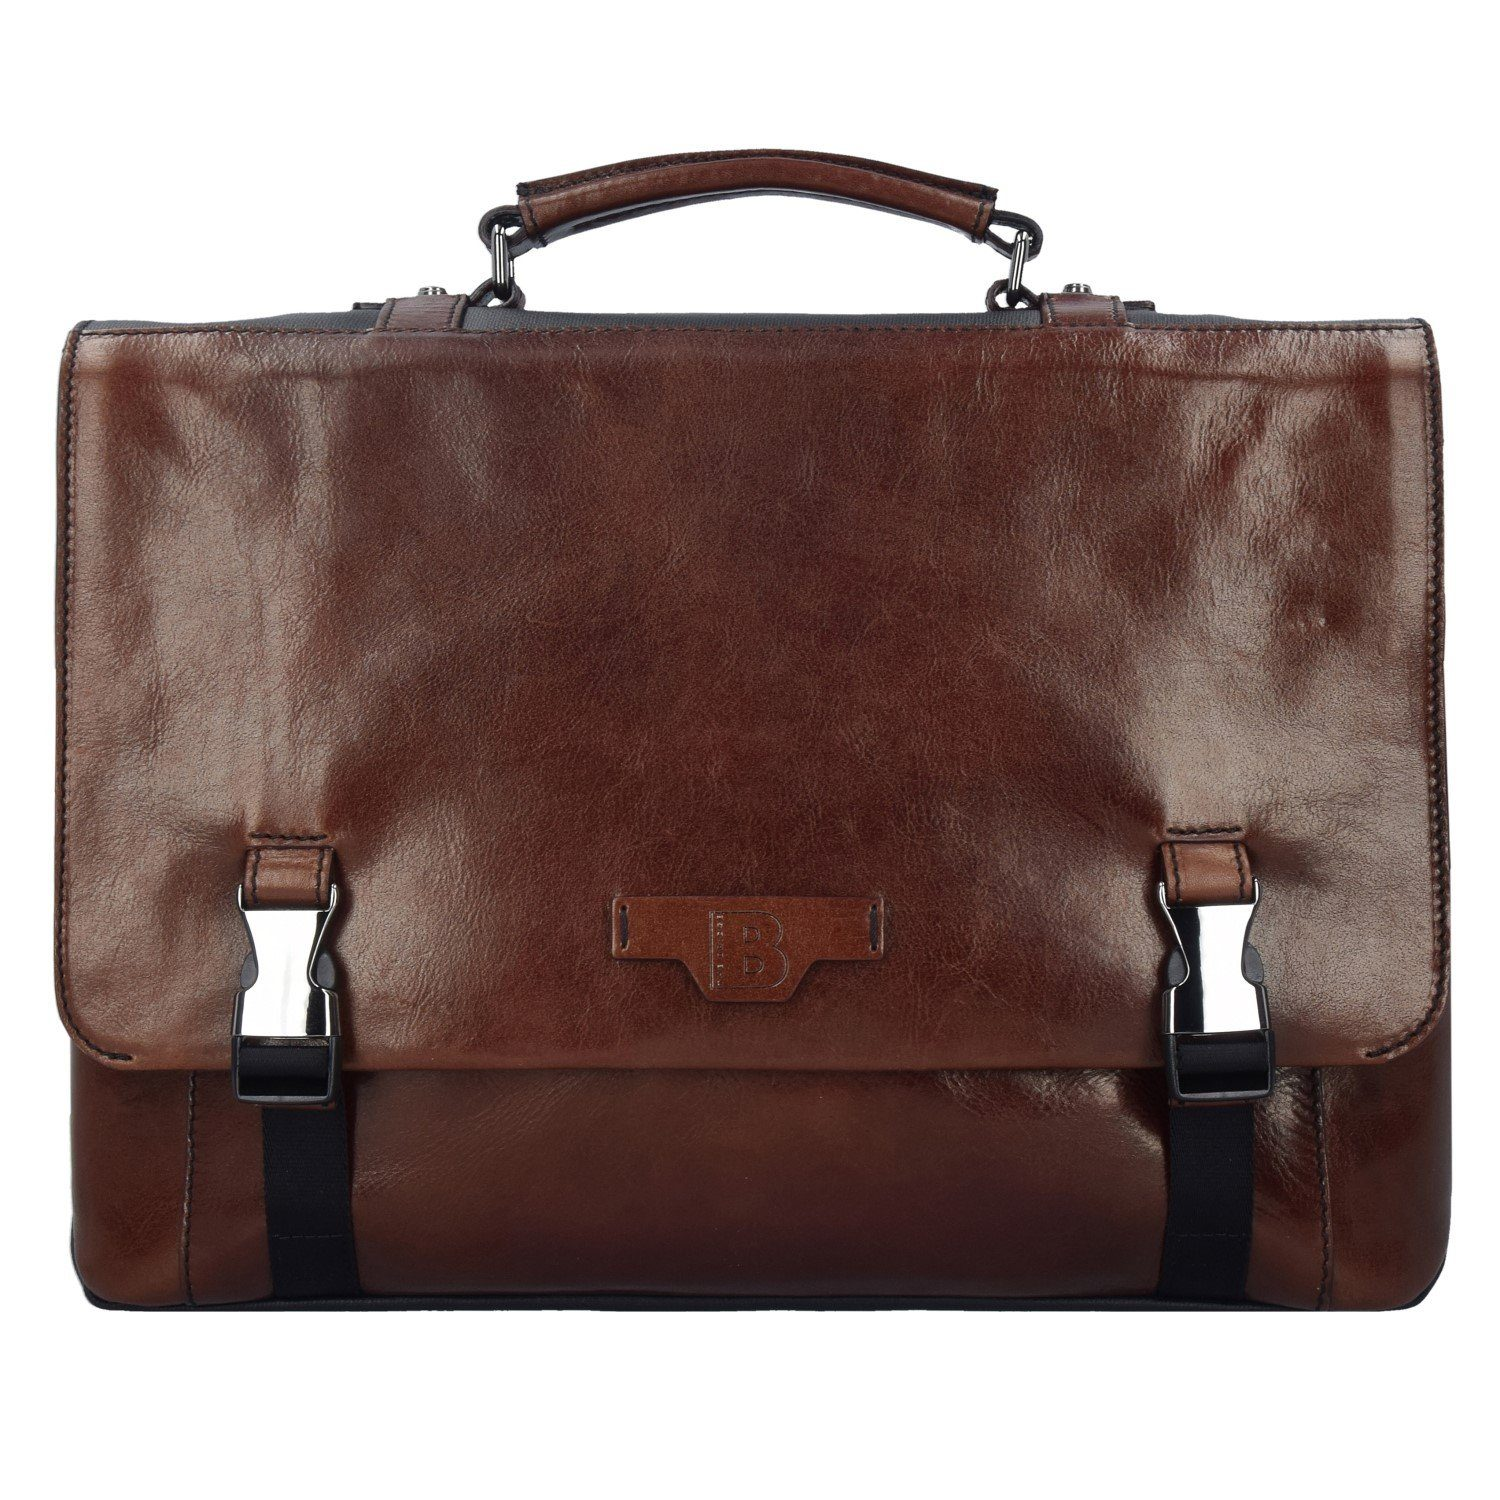 THE BRIDGE Hydro Messenger Tasche Leder 42 cm Laptopfach